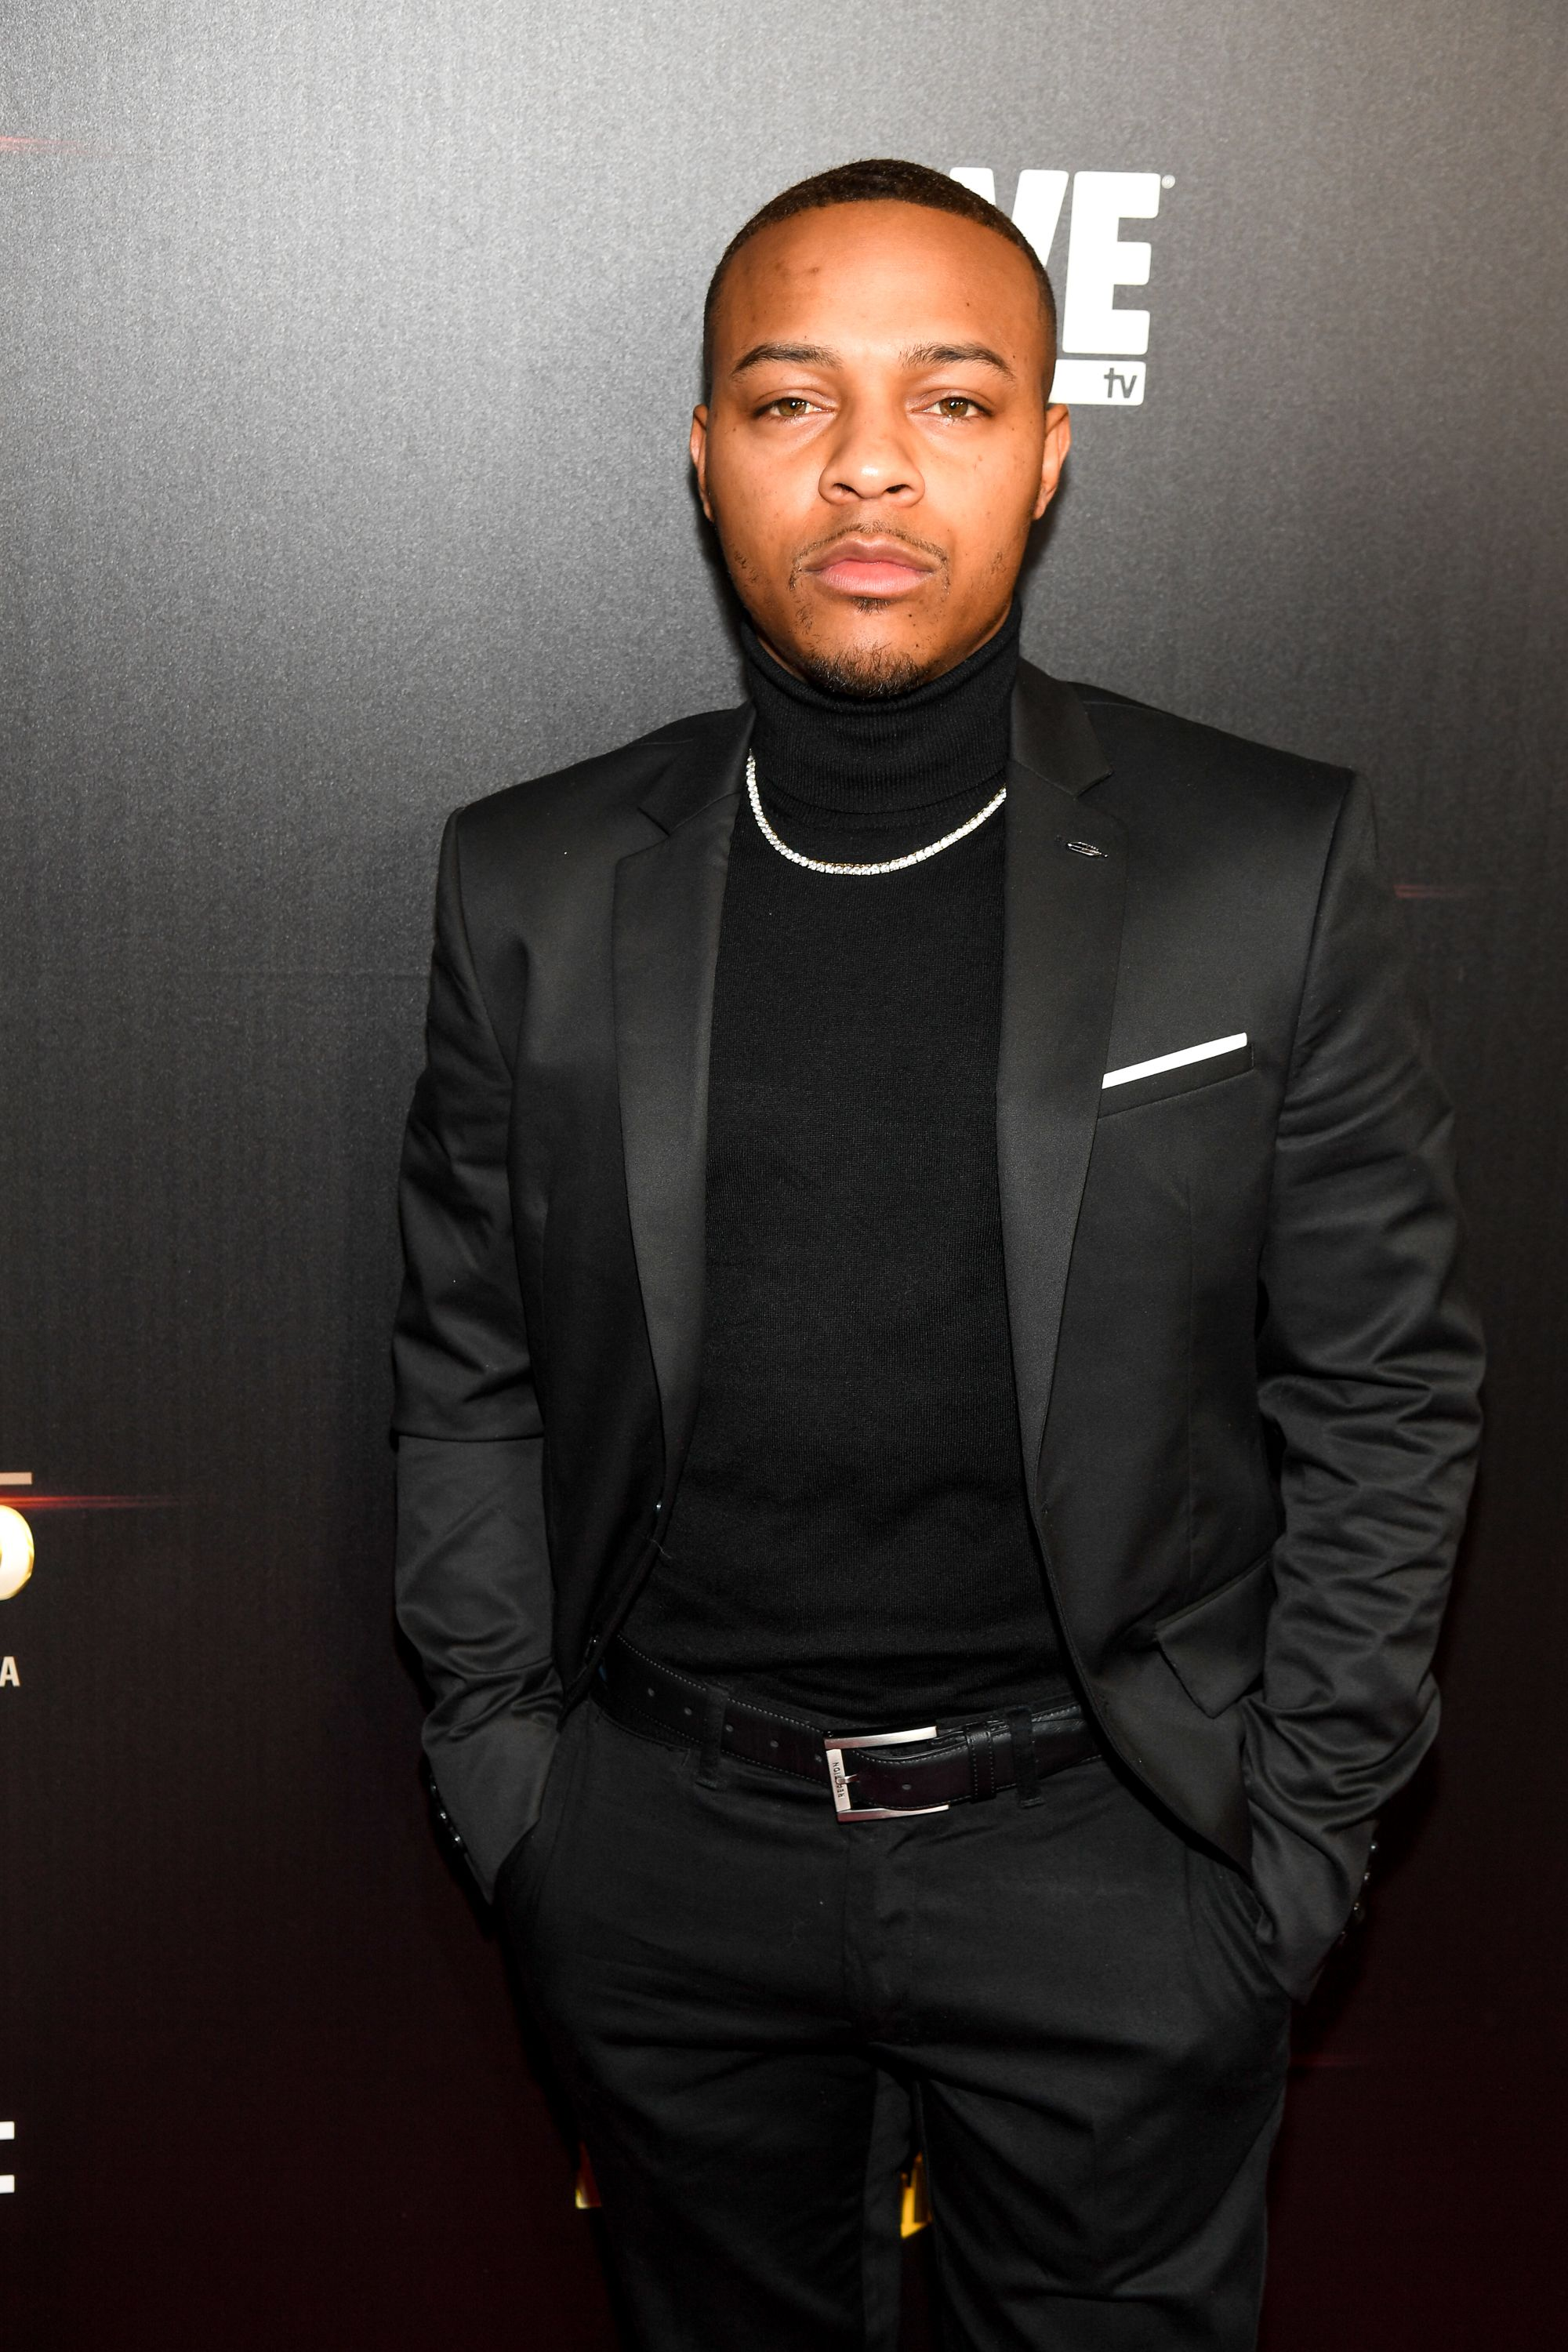 """Bow Wow at the """"Growing Up Hip Hop Atlanta"""" premiere party for season 2 on January 9, 2018 in Atlanta. 